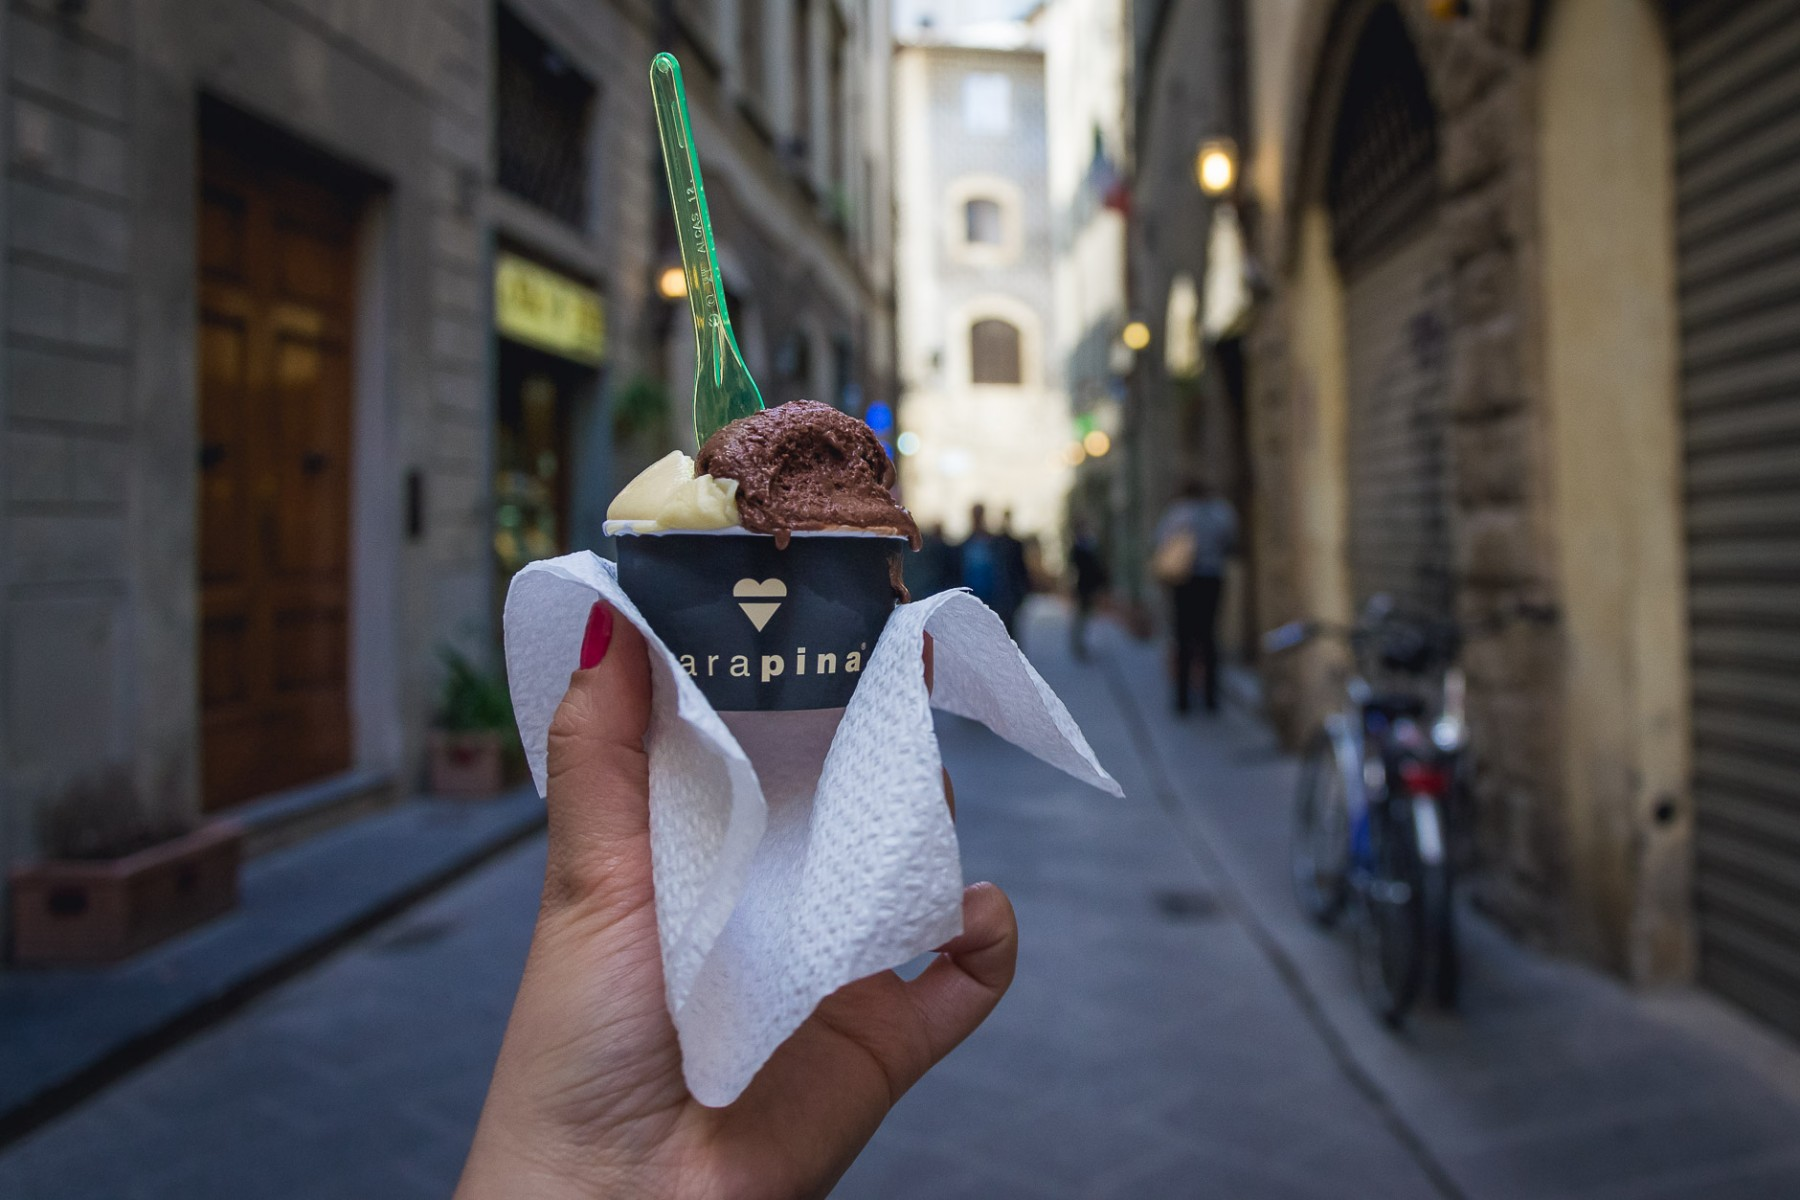 Carapina gelato in Florence, Italy